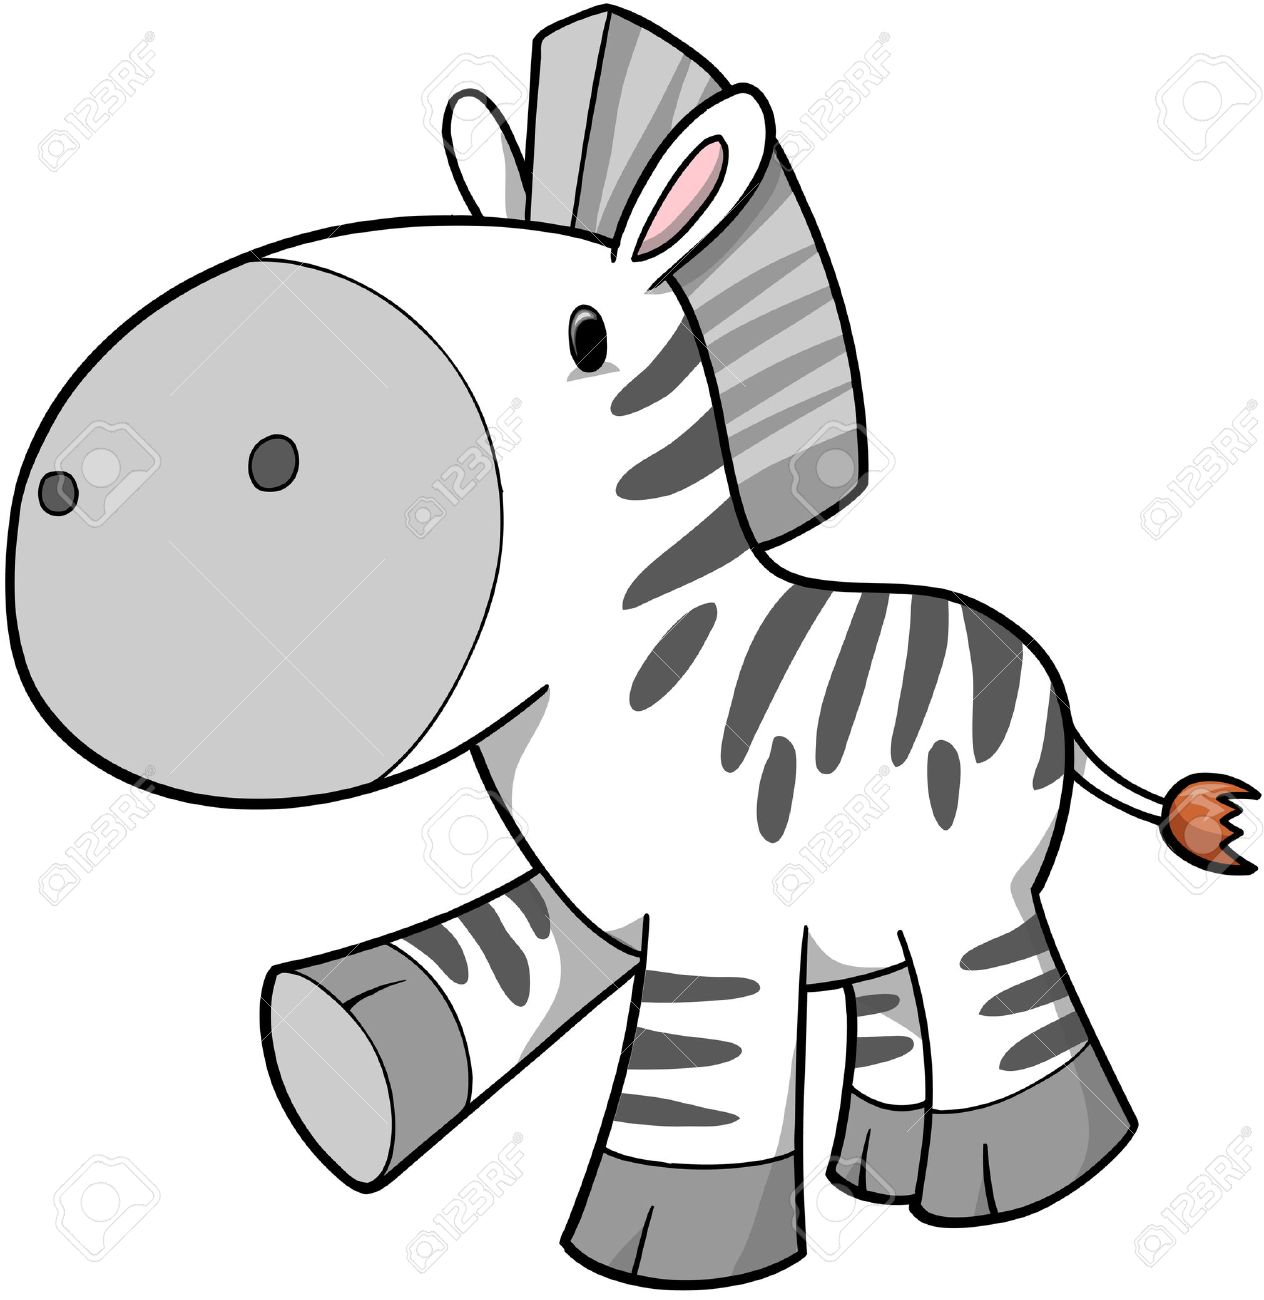 1264x1300 Zebra Vector Illustration Royalty Free Cliparts, Vectors, And